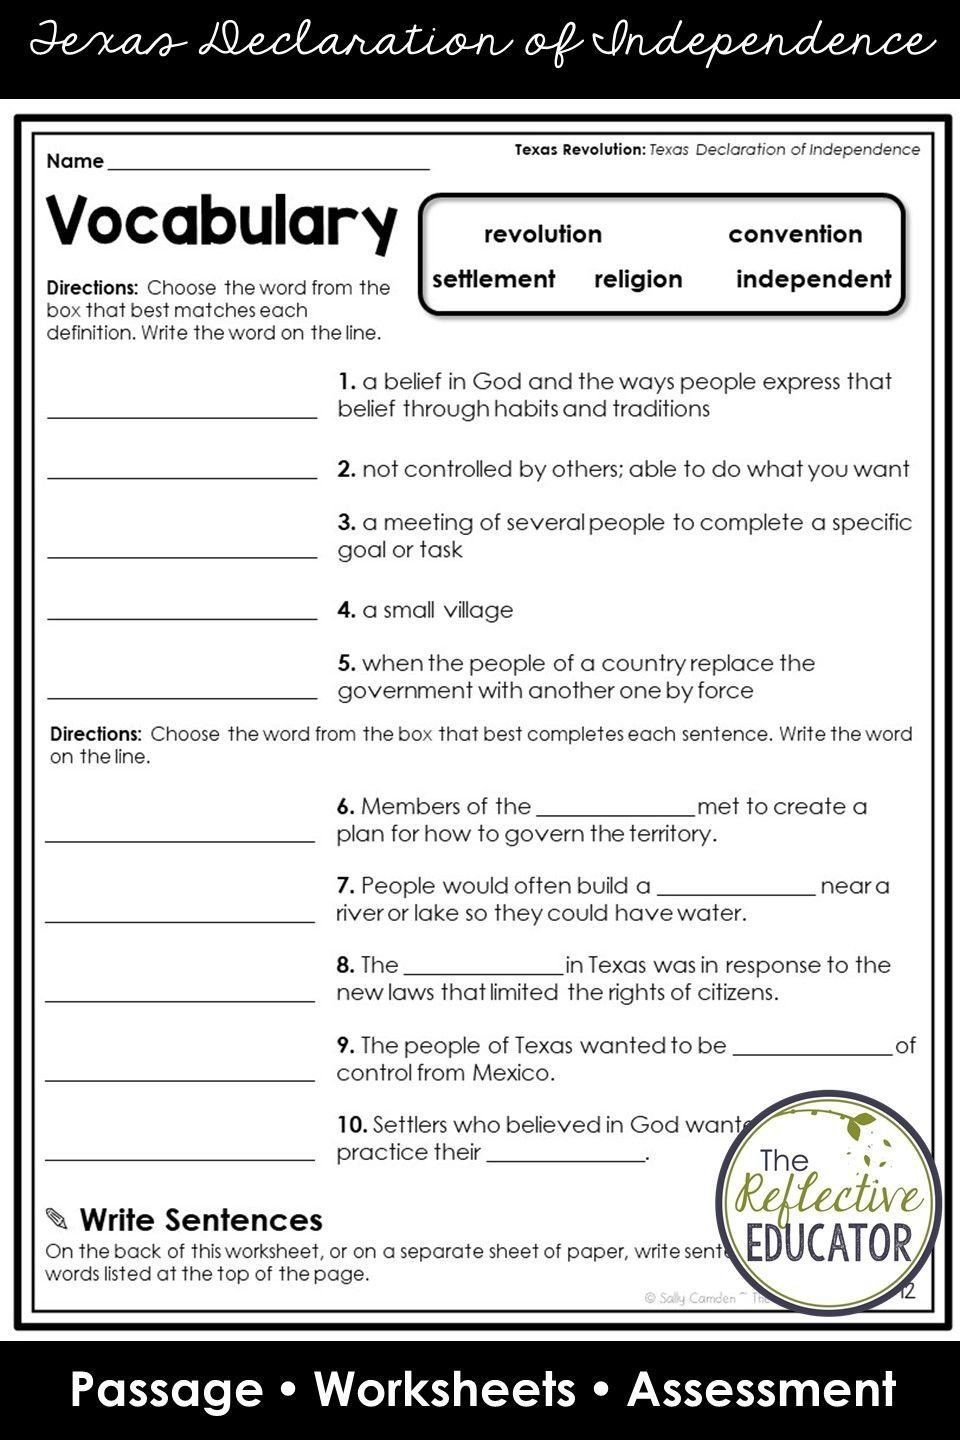 Declaration Of Independence Worksheet Pin On Social Stu S Worksheets In 2020 Social Studies Worksheets Social Studies Social Studies Elementary